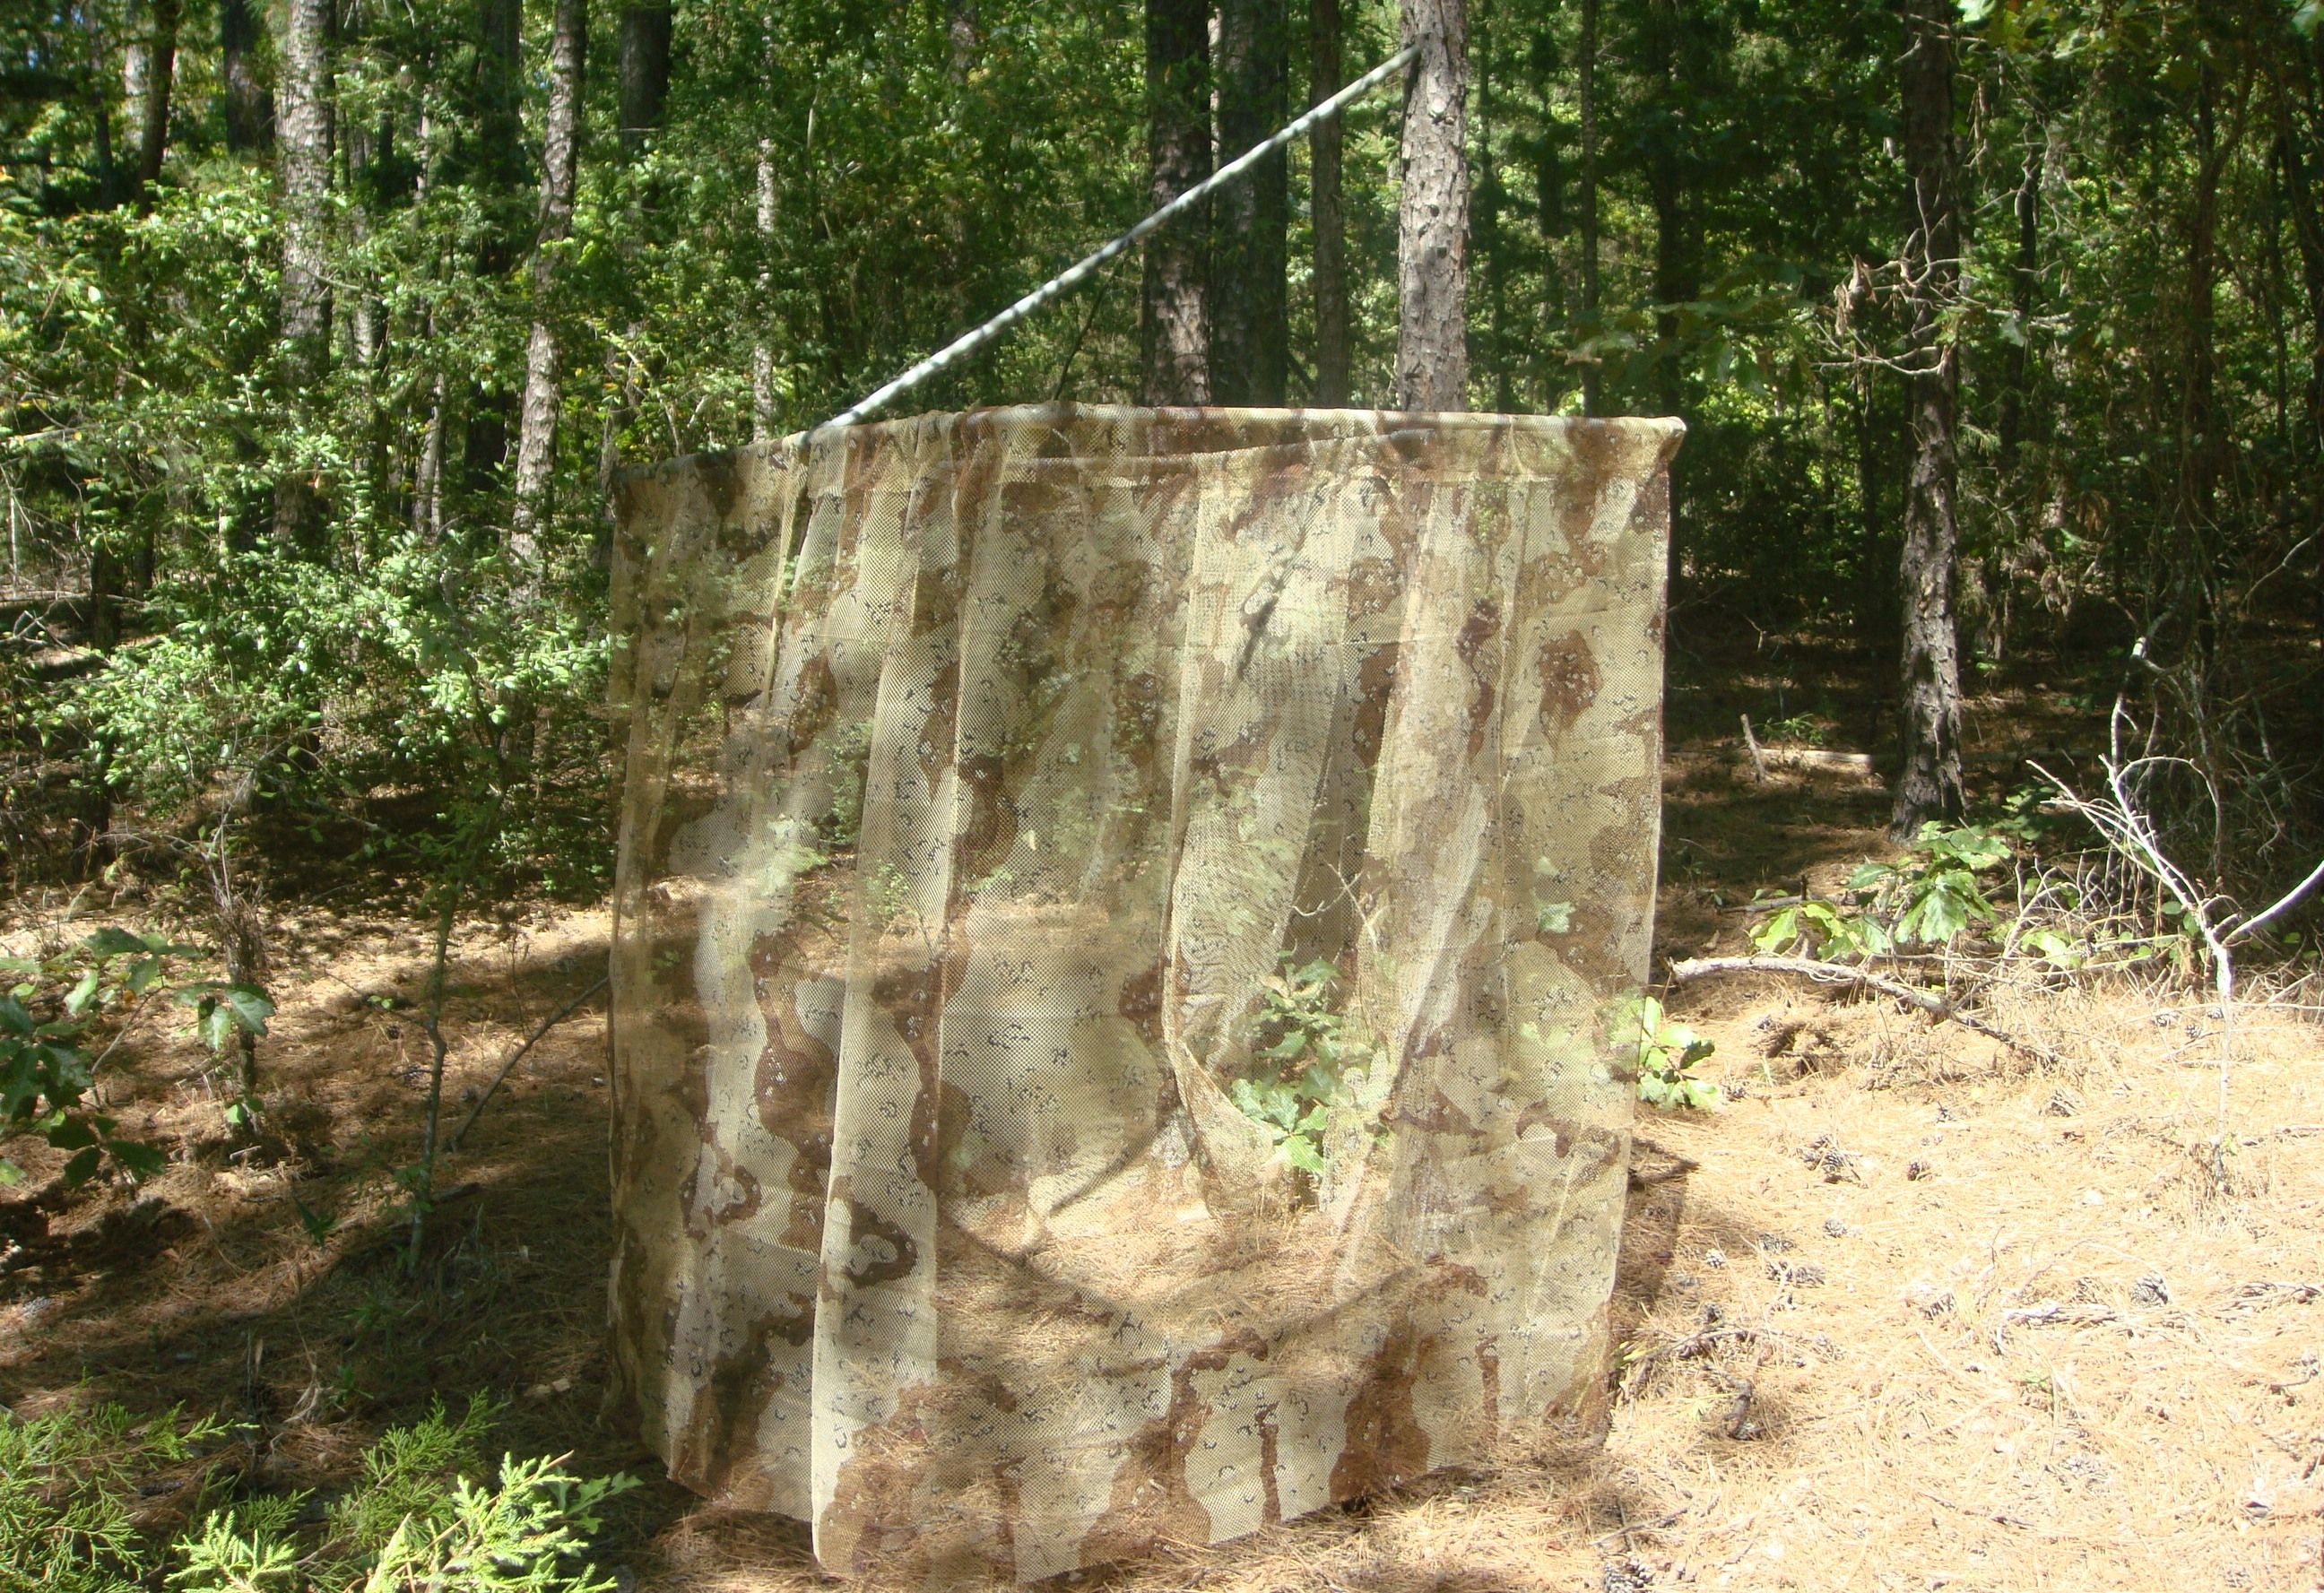 Build A Portable Blind For Your Deer Stand Sensible Survival